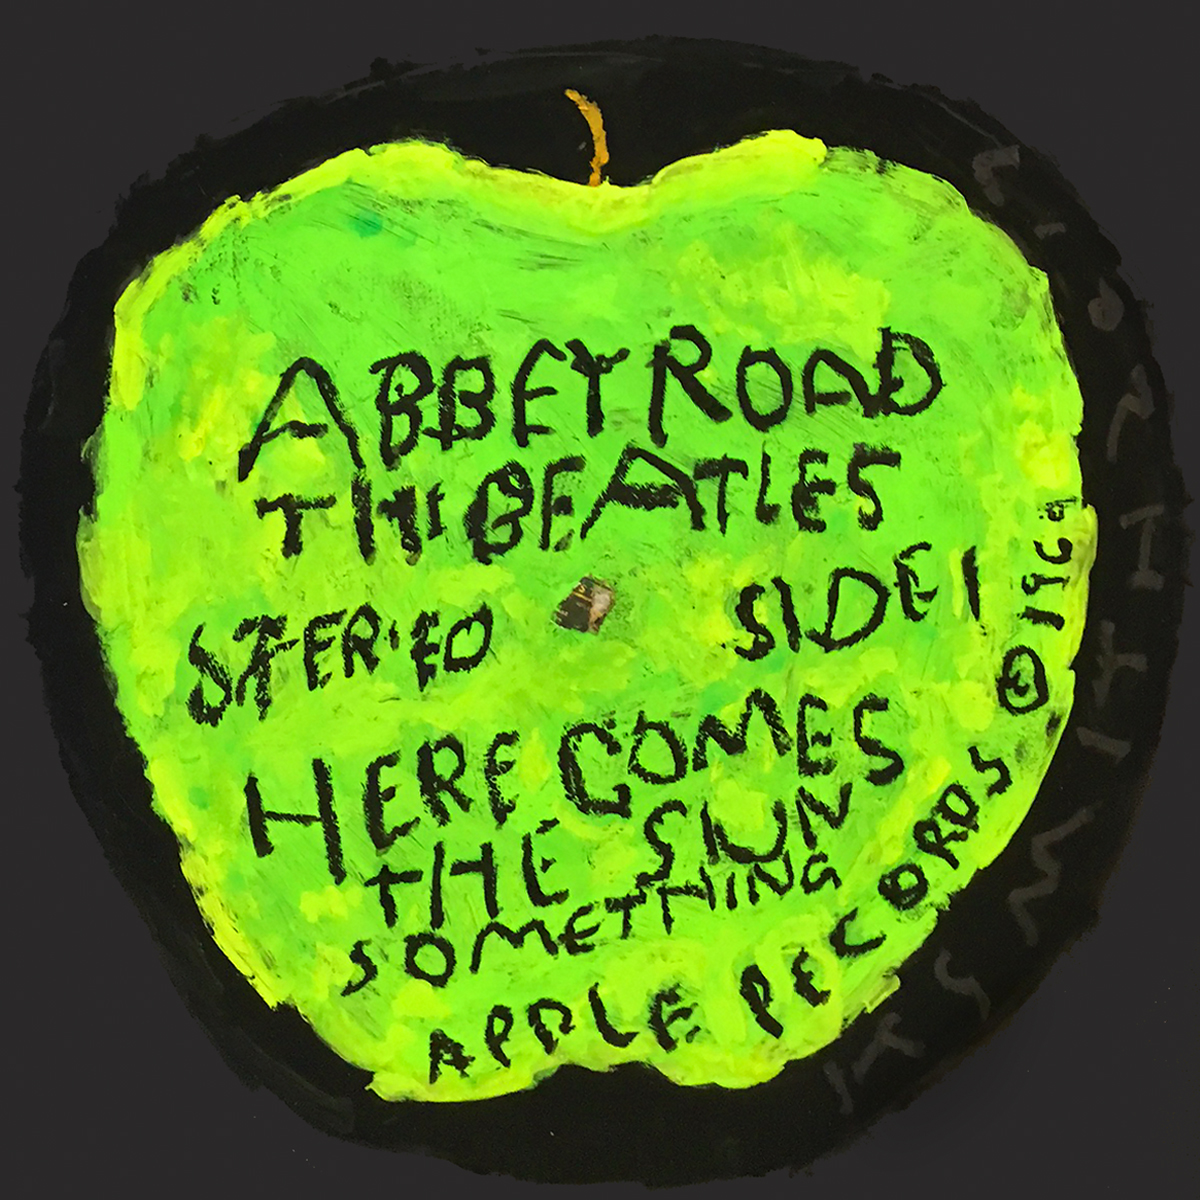 The Beatles / Abbey road #2